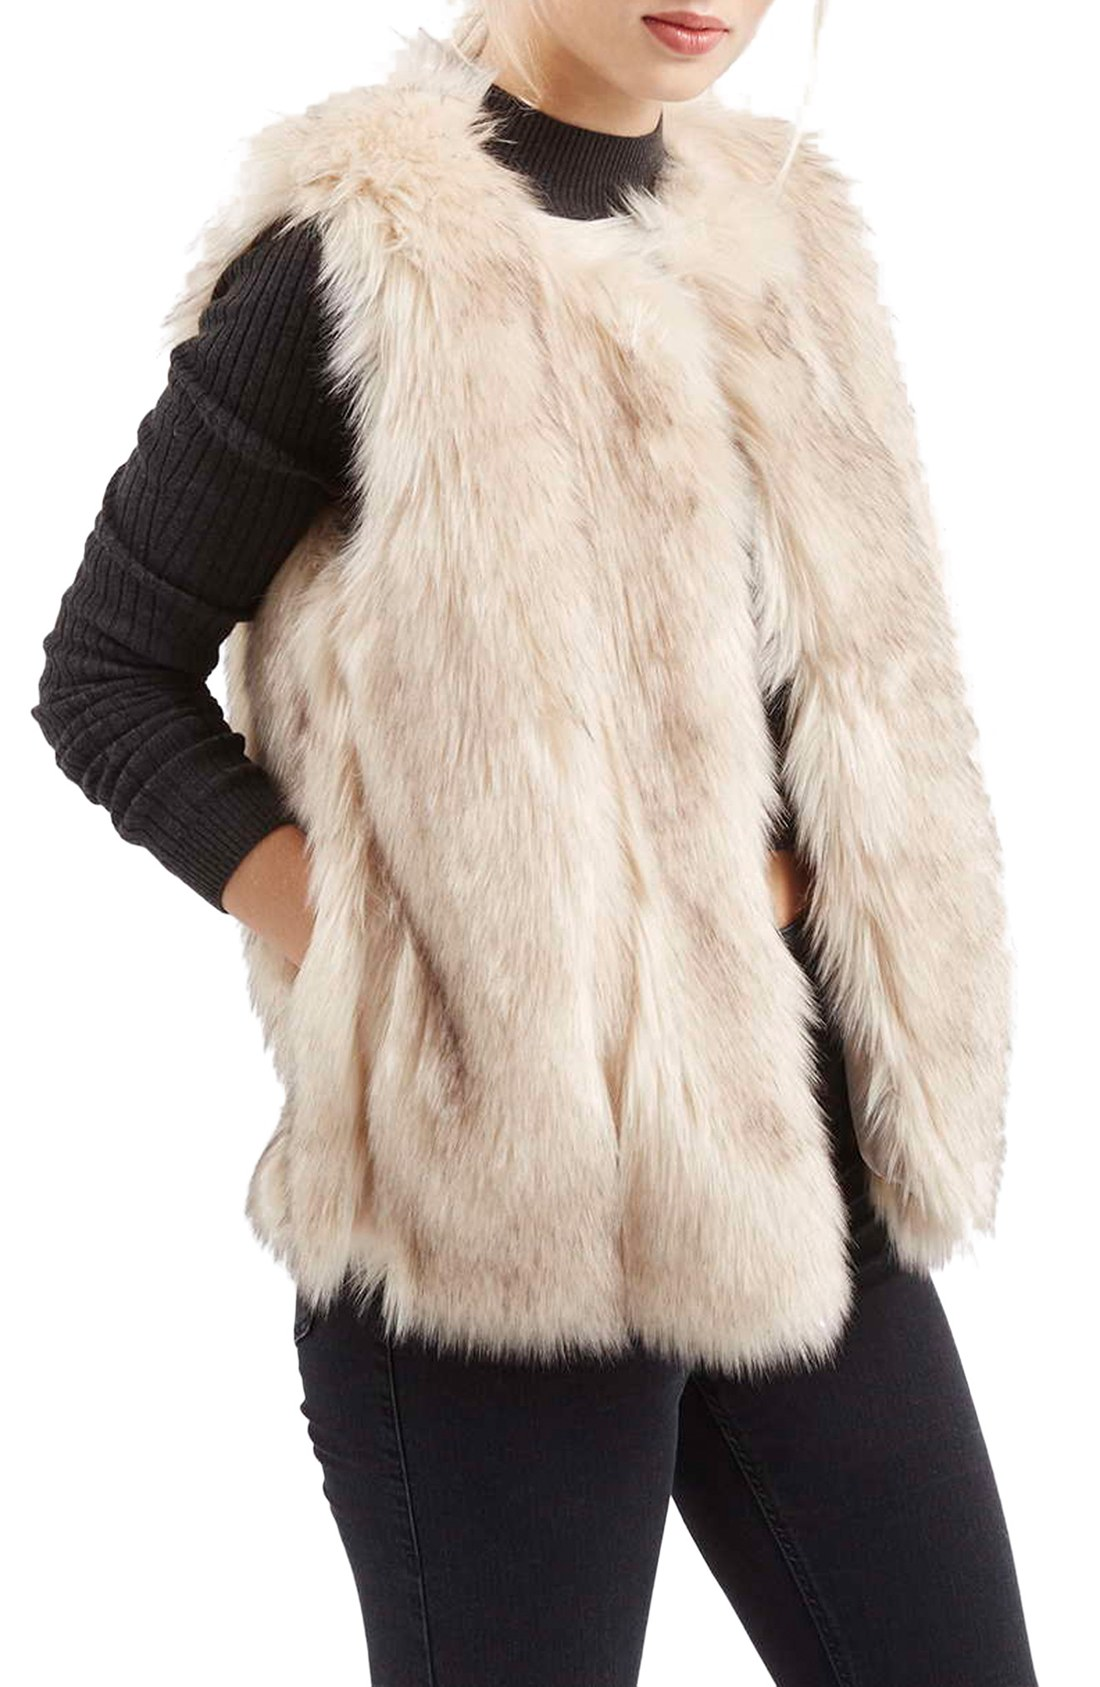 Free shipping BOTH ways on faux fur vest womens, from our vast selection of styles. Fast delivery, and 24/7/ real-person service with a smile. Click or call